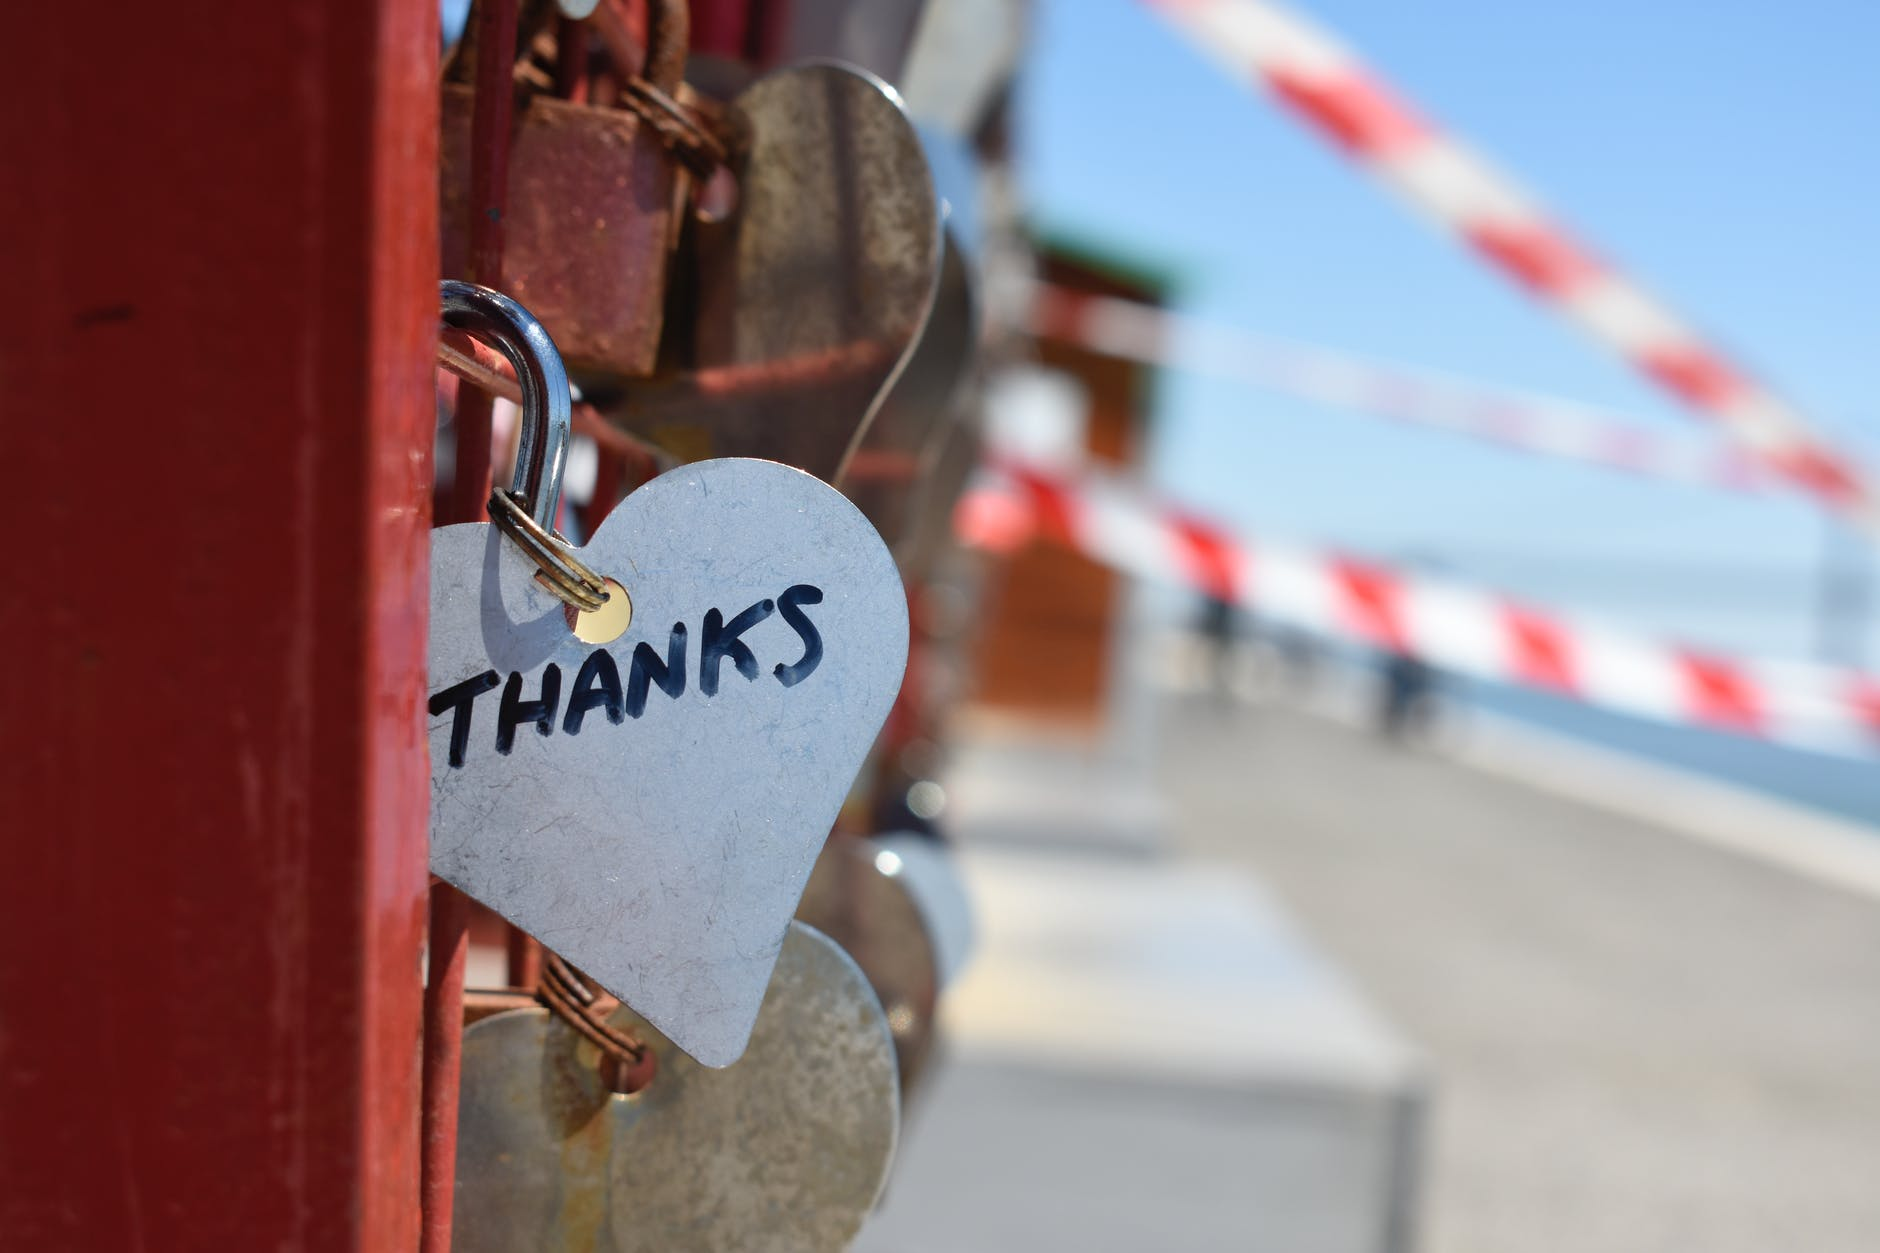 A heart shaped trinket with the words Thanks written on it. The trinket is attached to a padlock that is attached to a red fence.